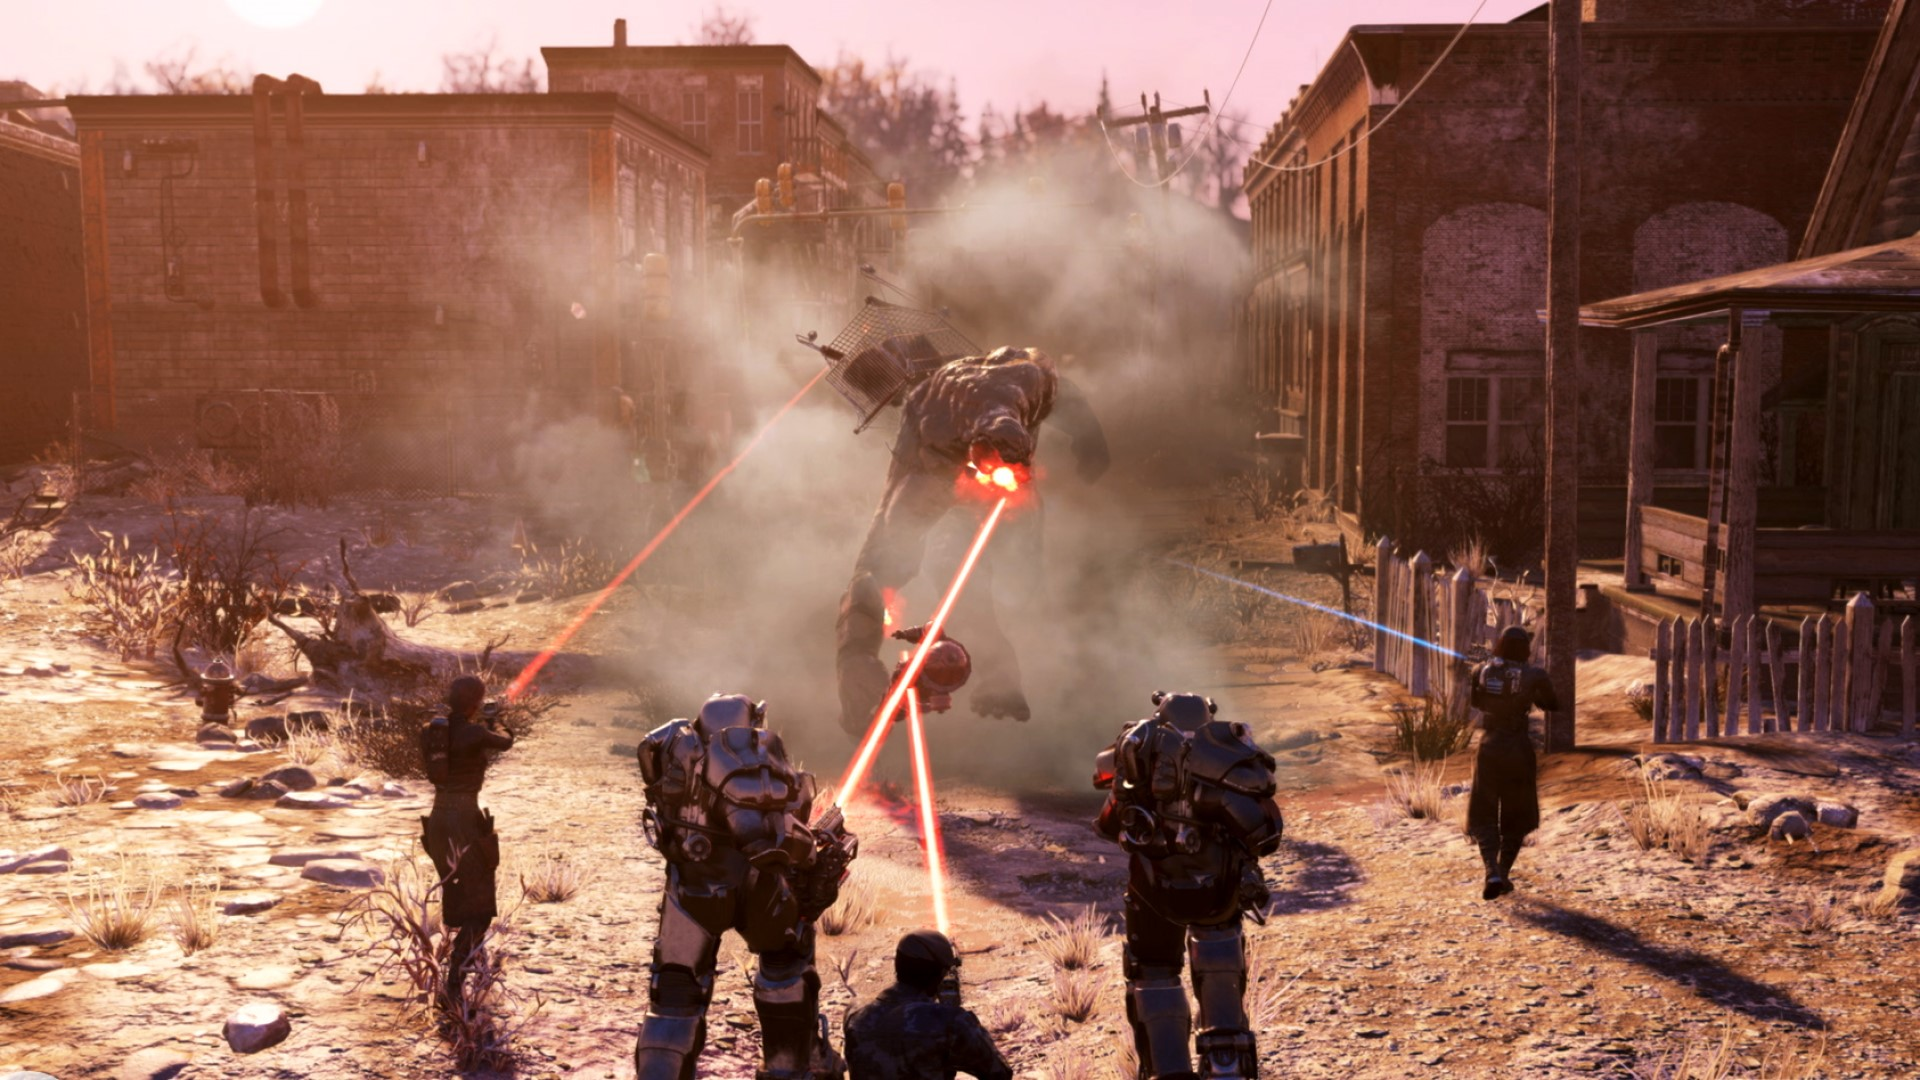 Fallout 76's Steel Reign update is out next month